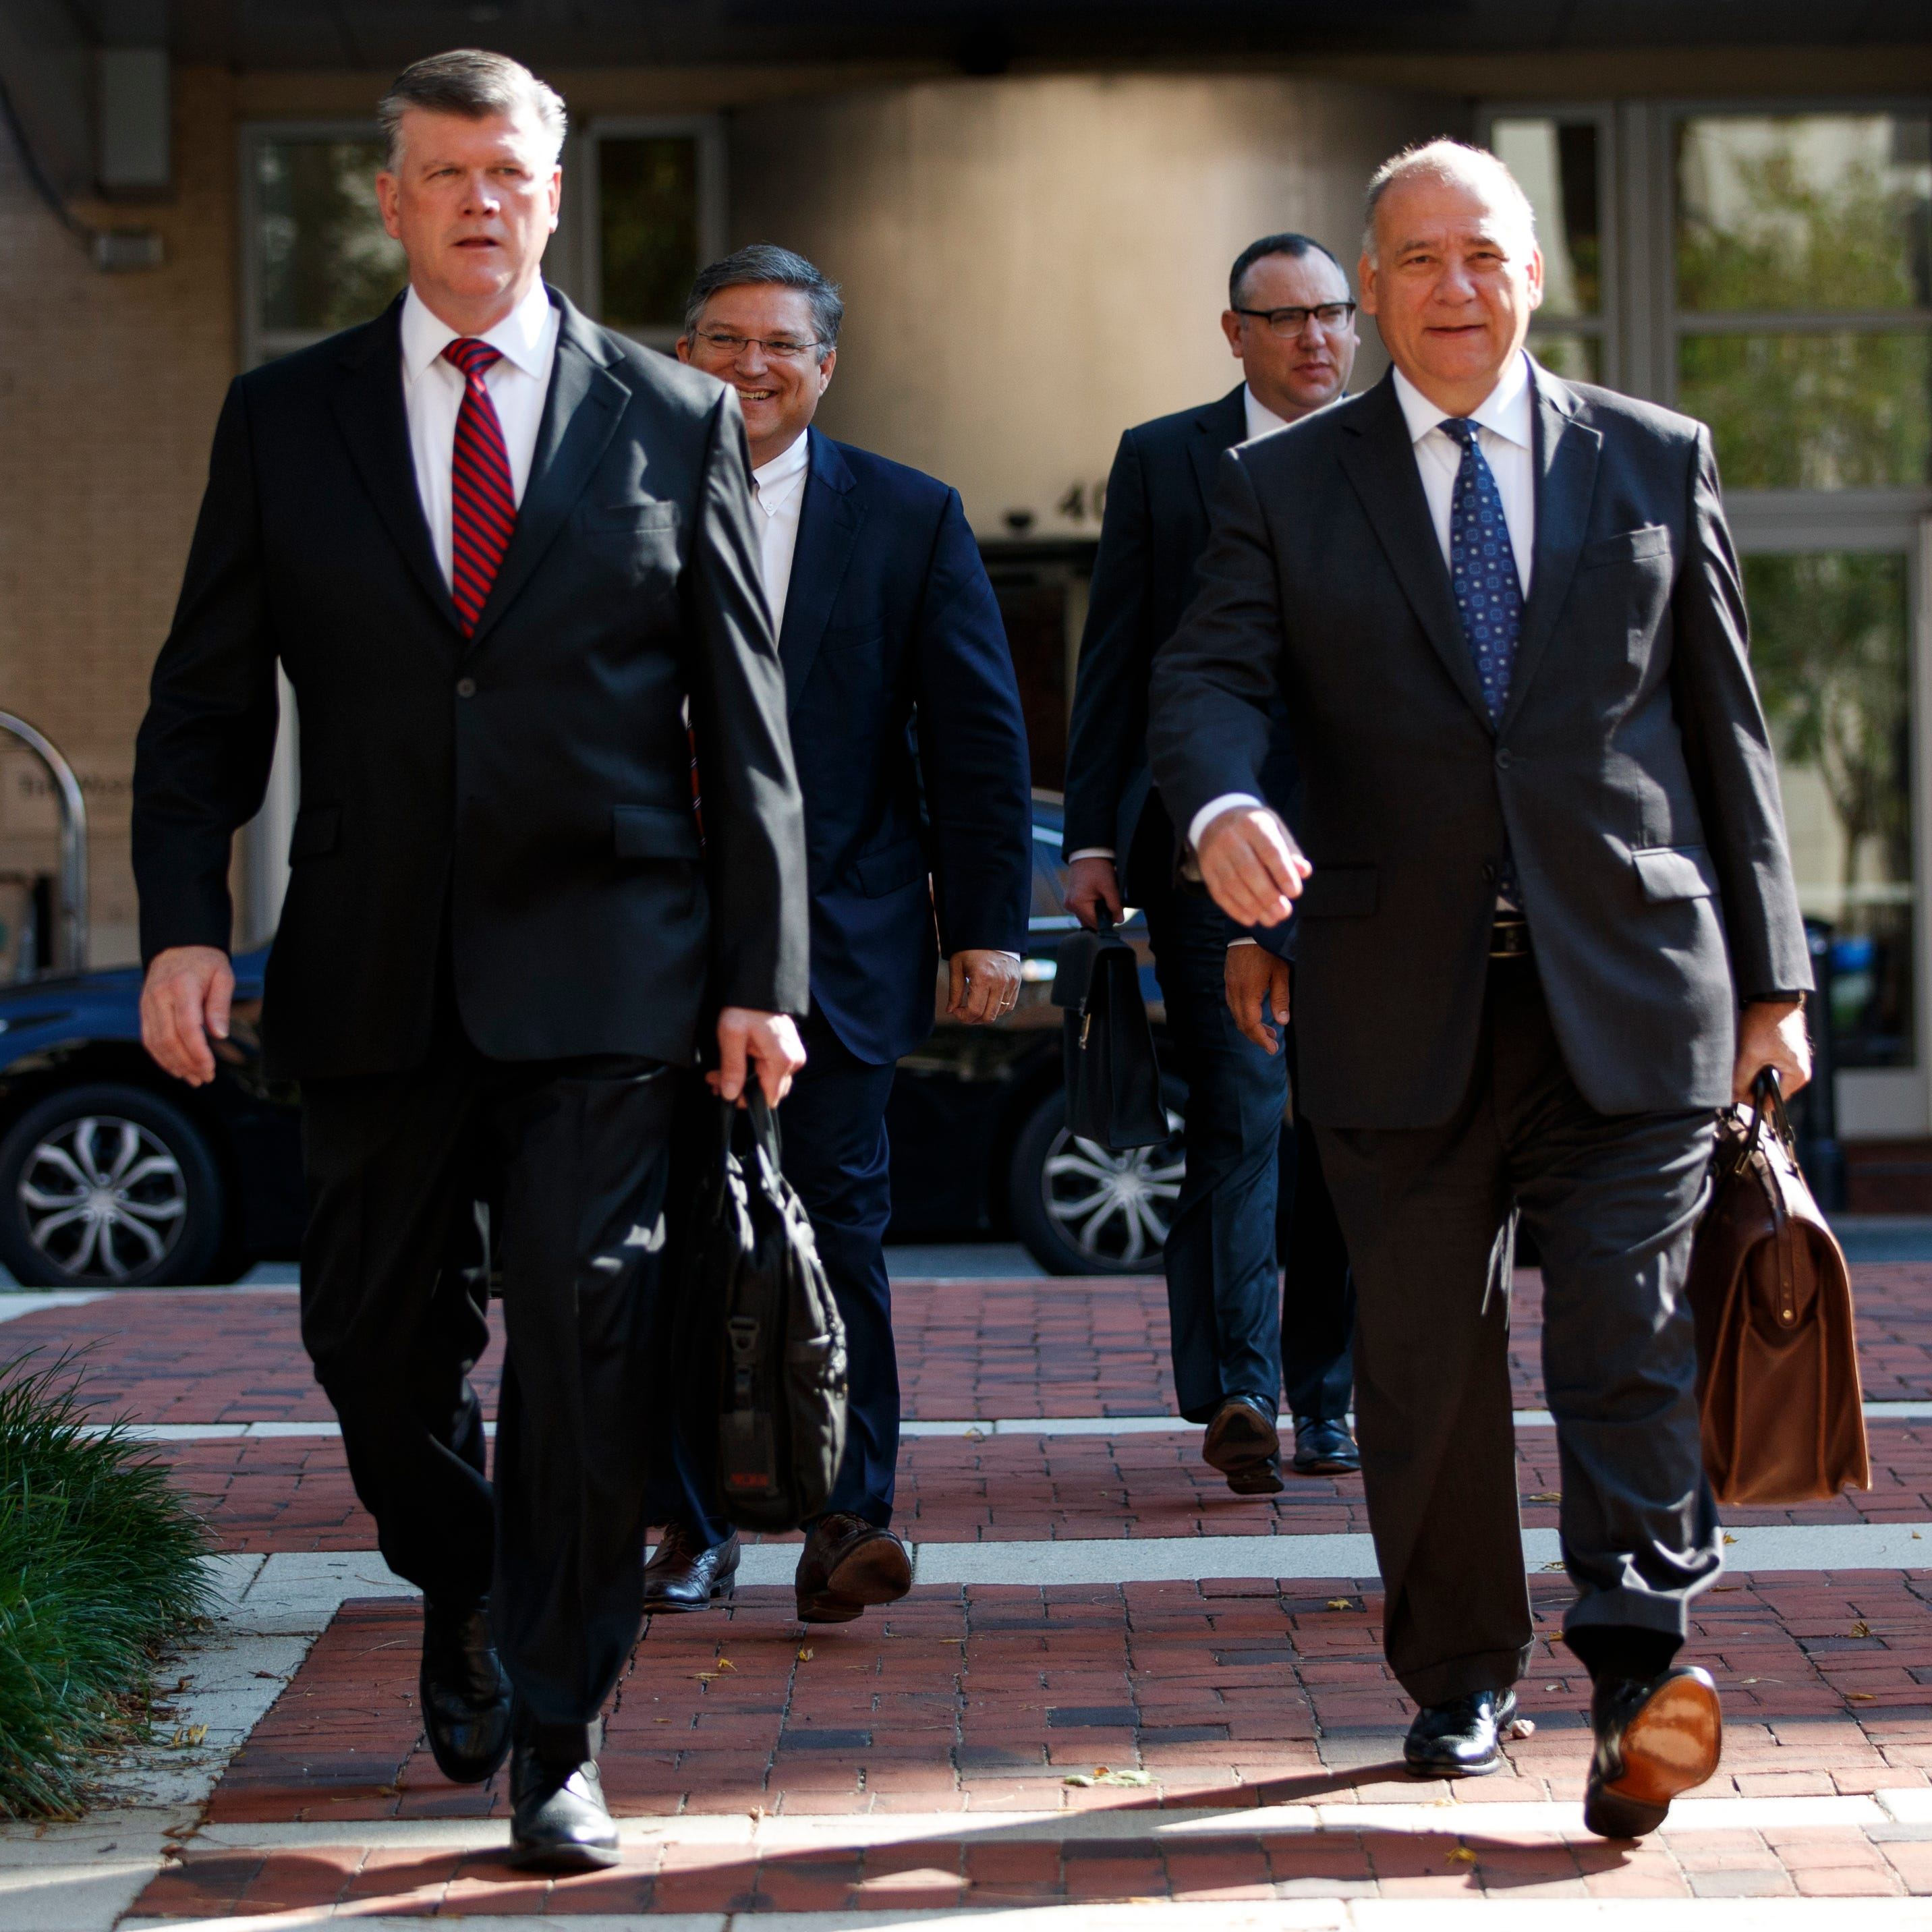 The defense team for Paul Manafort, including Kevin Downing left and Thomas Zehnle, arrive at the Albert V. Bryan United States Courthouse for the trial of former Trump campaign chairman, Friday in Alexandria, Va.